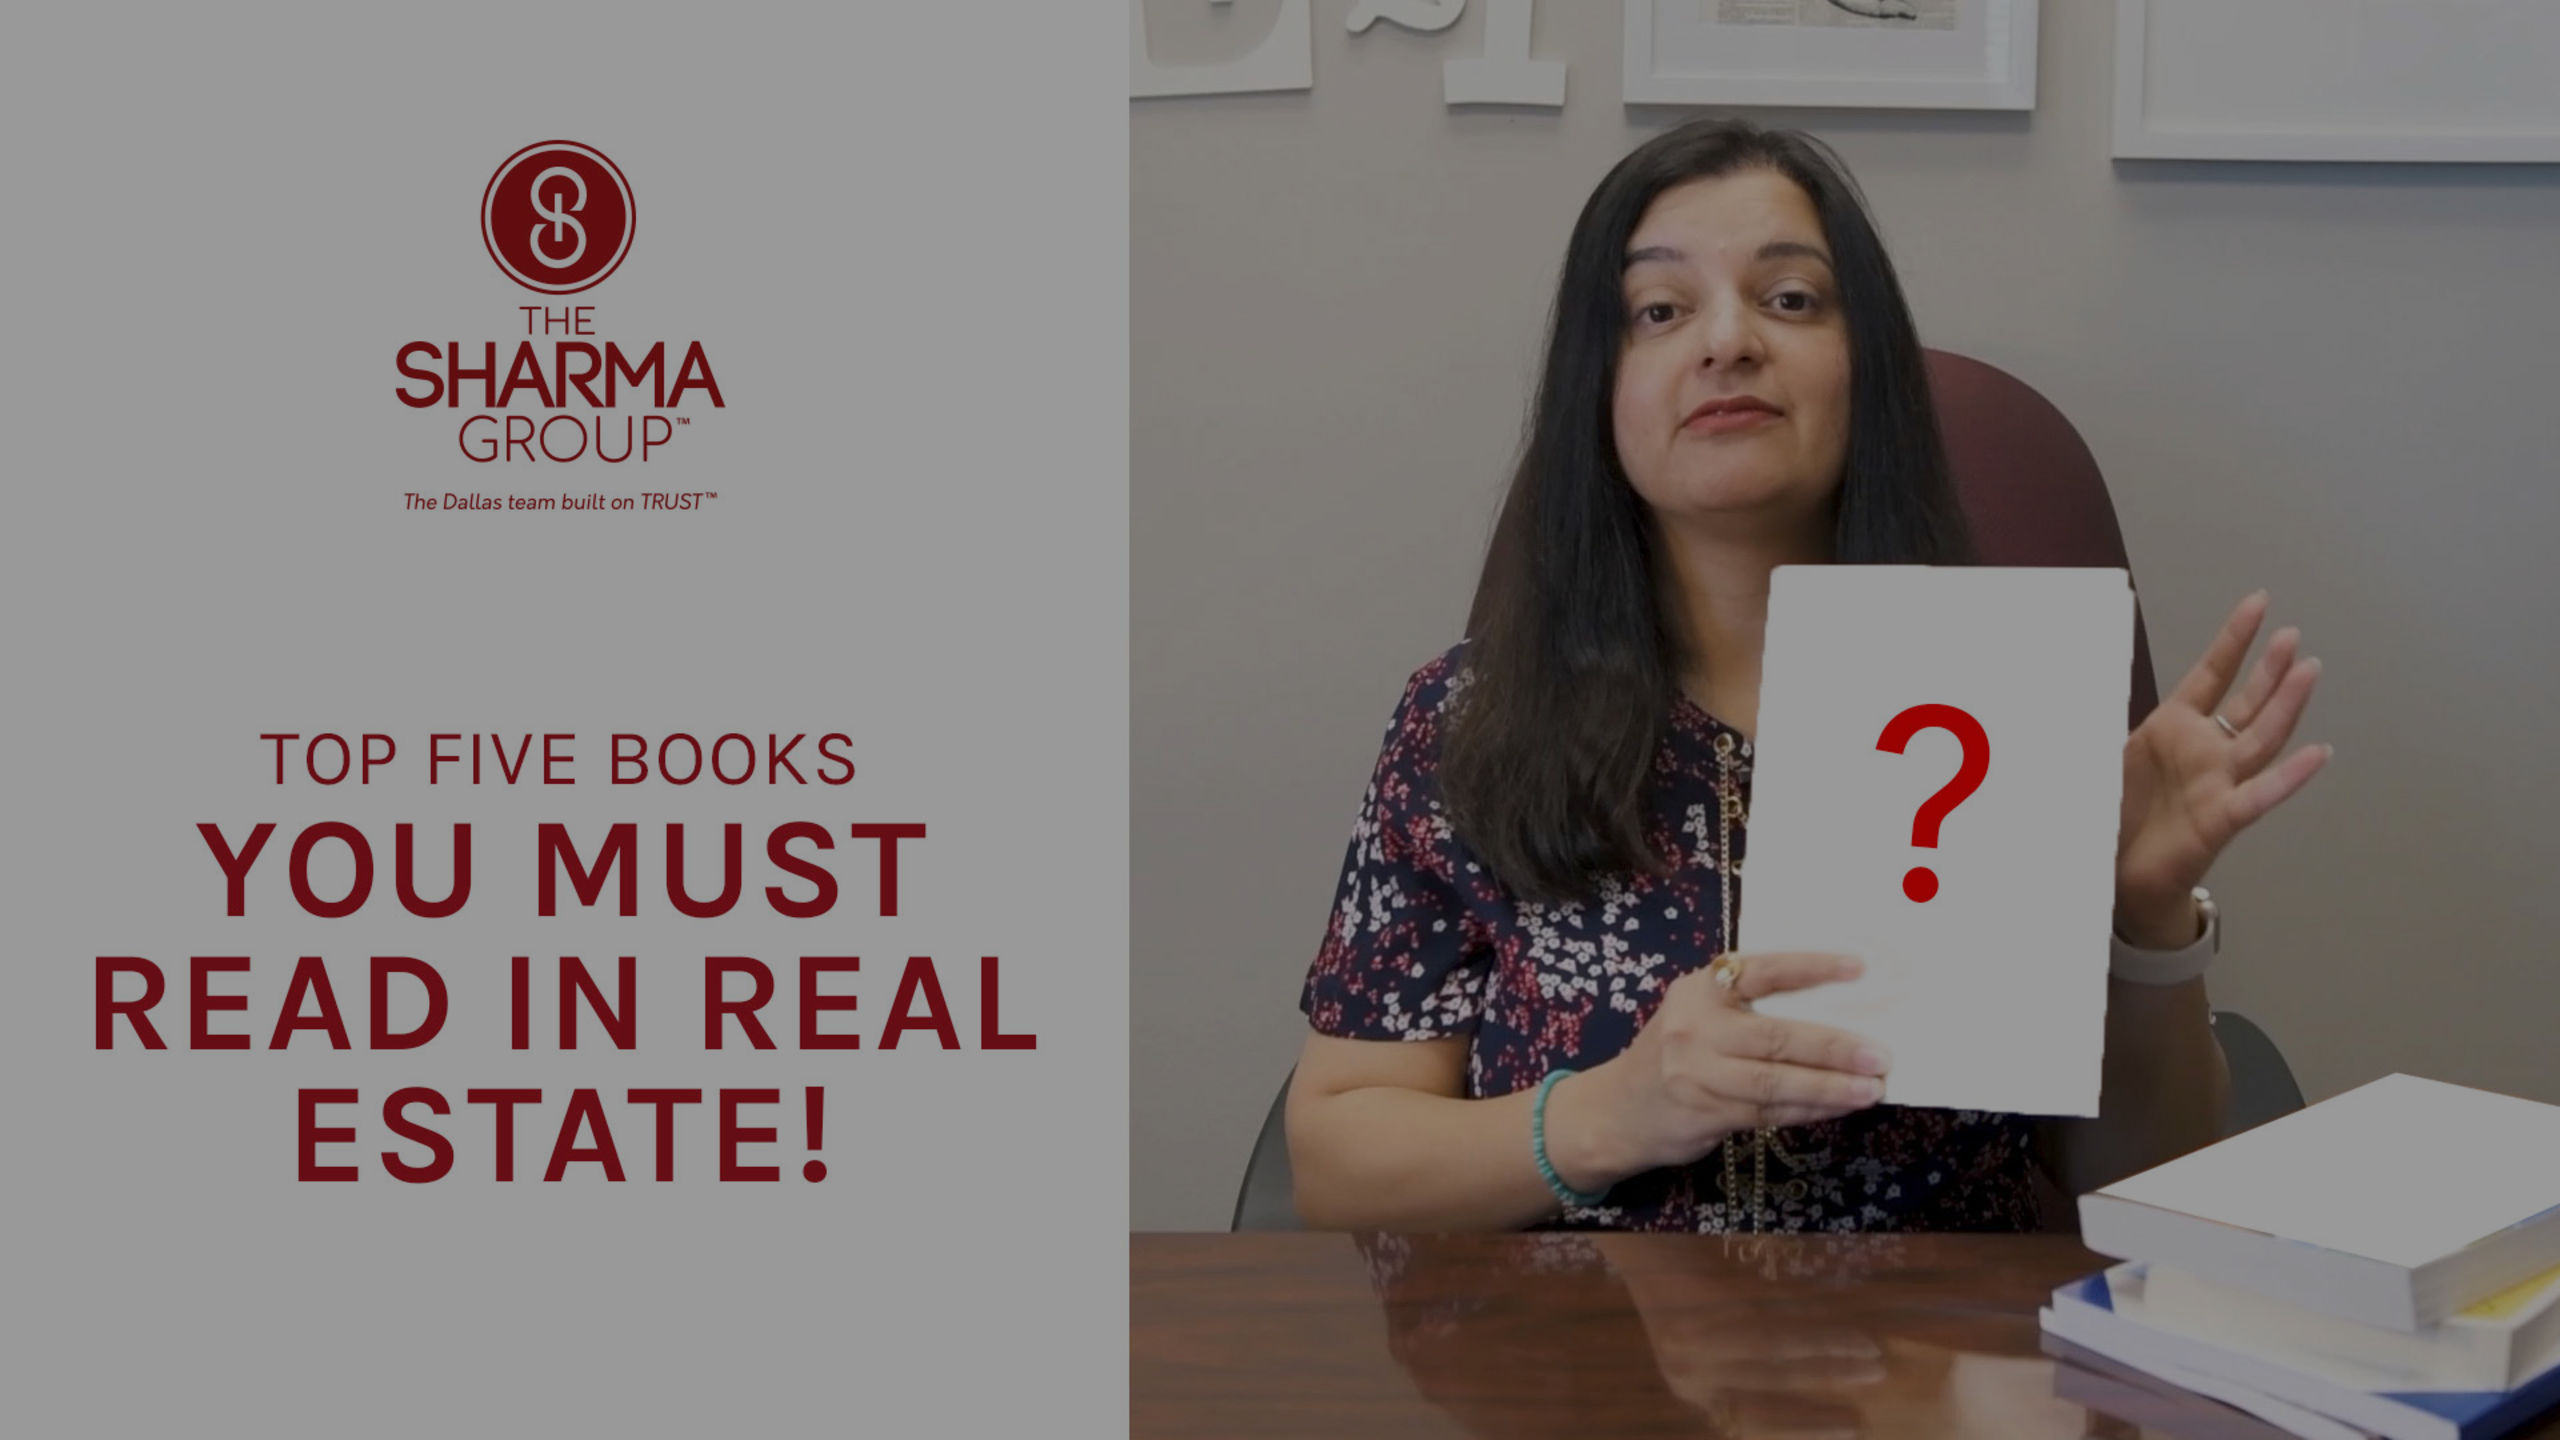 Our Top 5 Books For Realtors | The Sharma Group